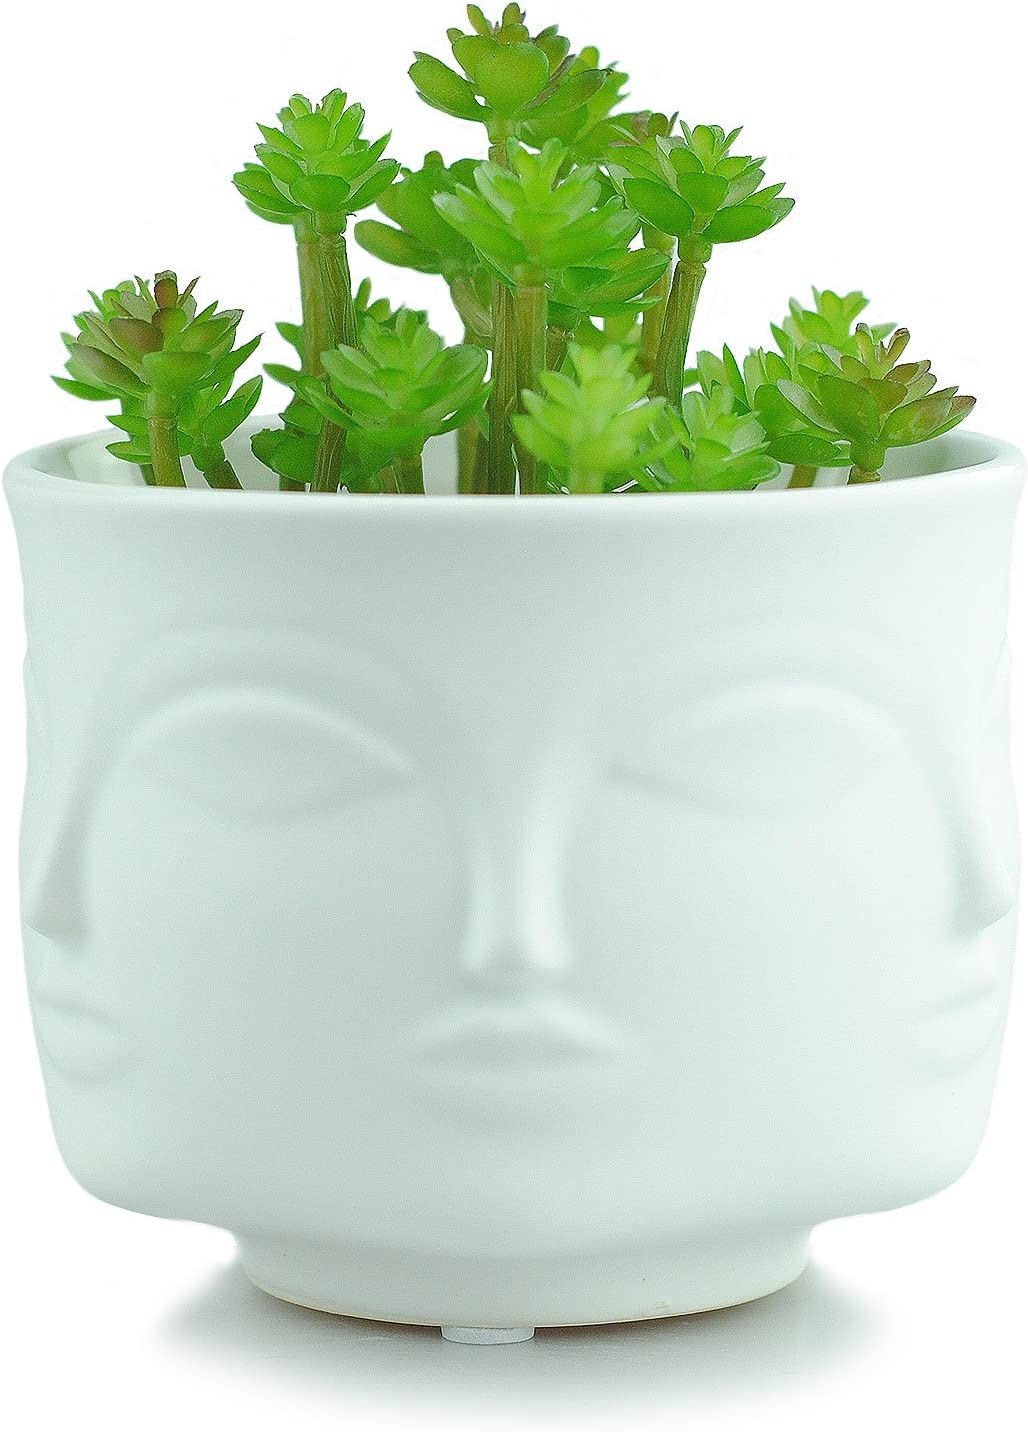 VanEnjoy Modern Decorative Nordic Style Face Statue Planter Flower Pots,Faces on 6 Sides, 4.37 Inches White